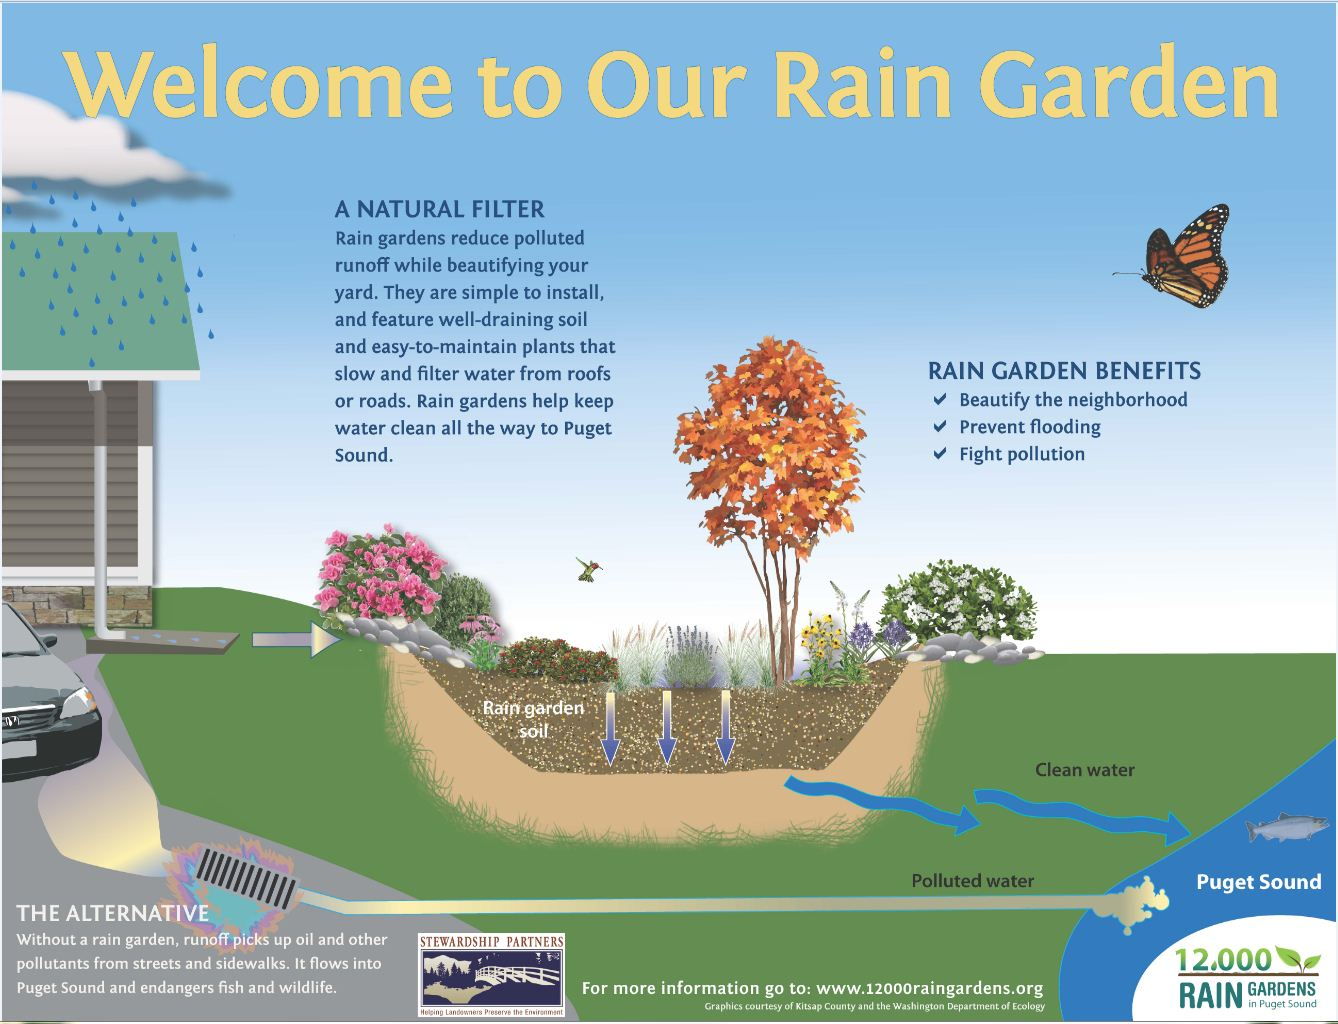 Resource Liry | 12,000 Rain Gardens on raised bed gardening design ideas, rain water garden ideas, greenhouse design ideas, landscape design ideas, rain garden construction, rain barrel design ideas, rain garden plans, downtown design ideas, rain garden installation, rain garden architecture, rain garden design diagrams, flower box design ideas, orchard design ideas, rain garden layout, rain gardening, permaculture design ideas, rain garden design templates, rain garden plants, rain garden design software, root cellar design ideas,